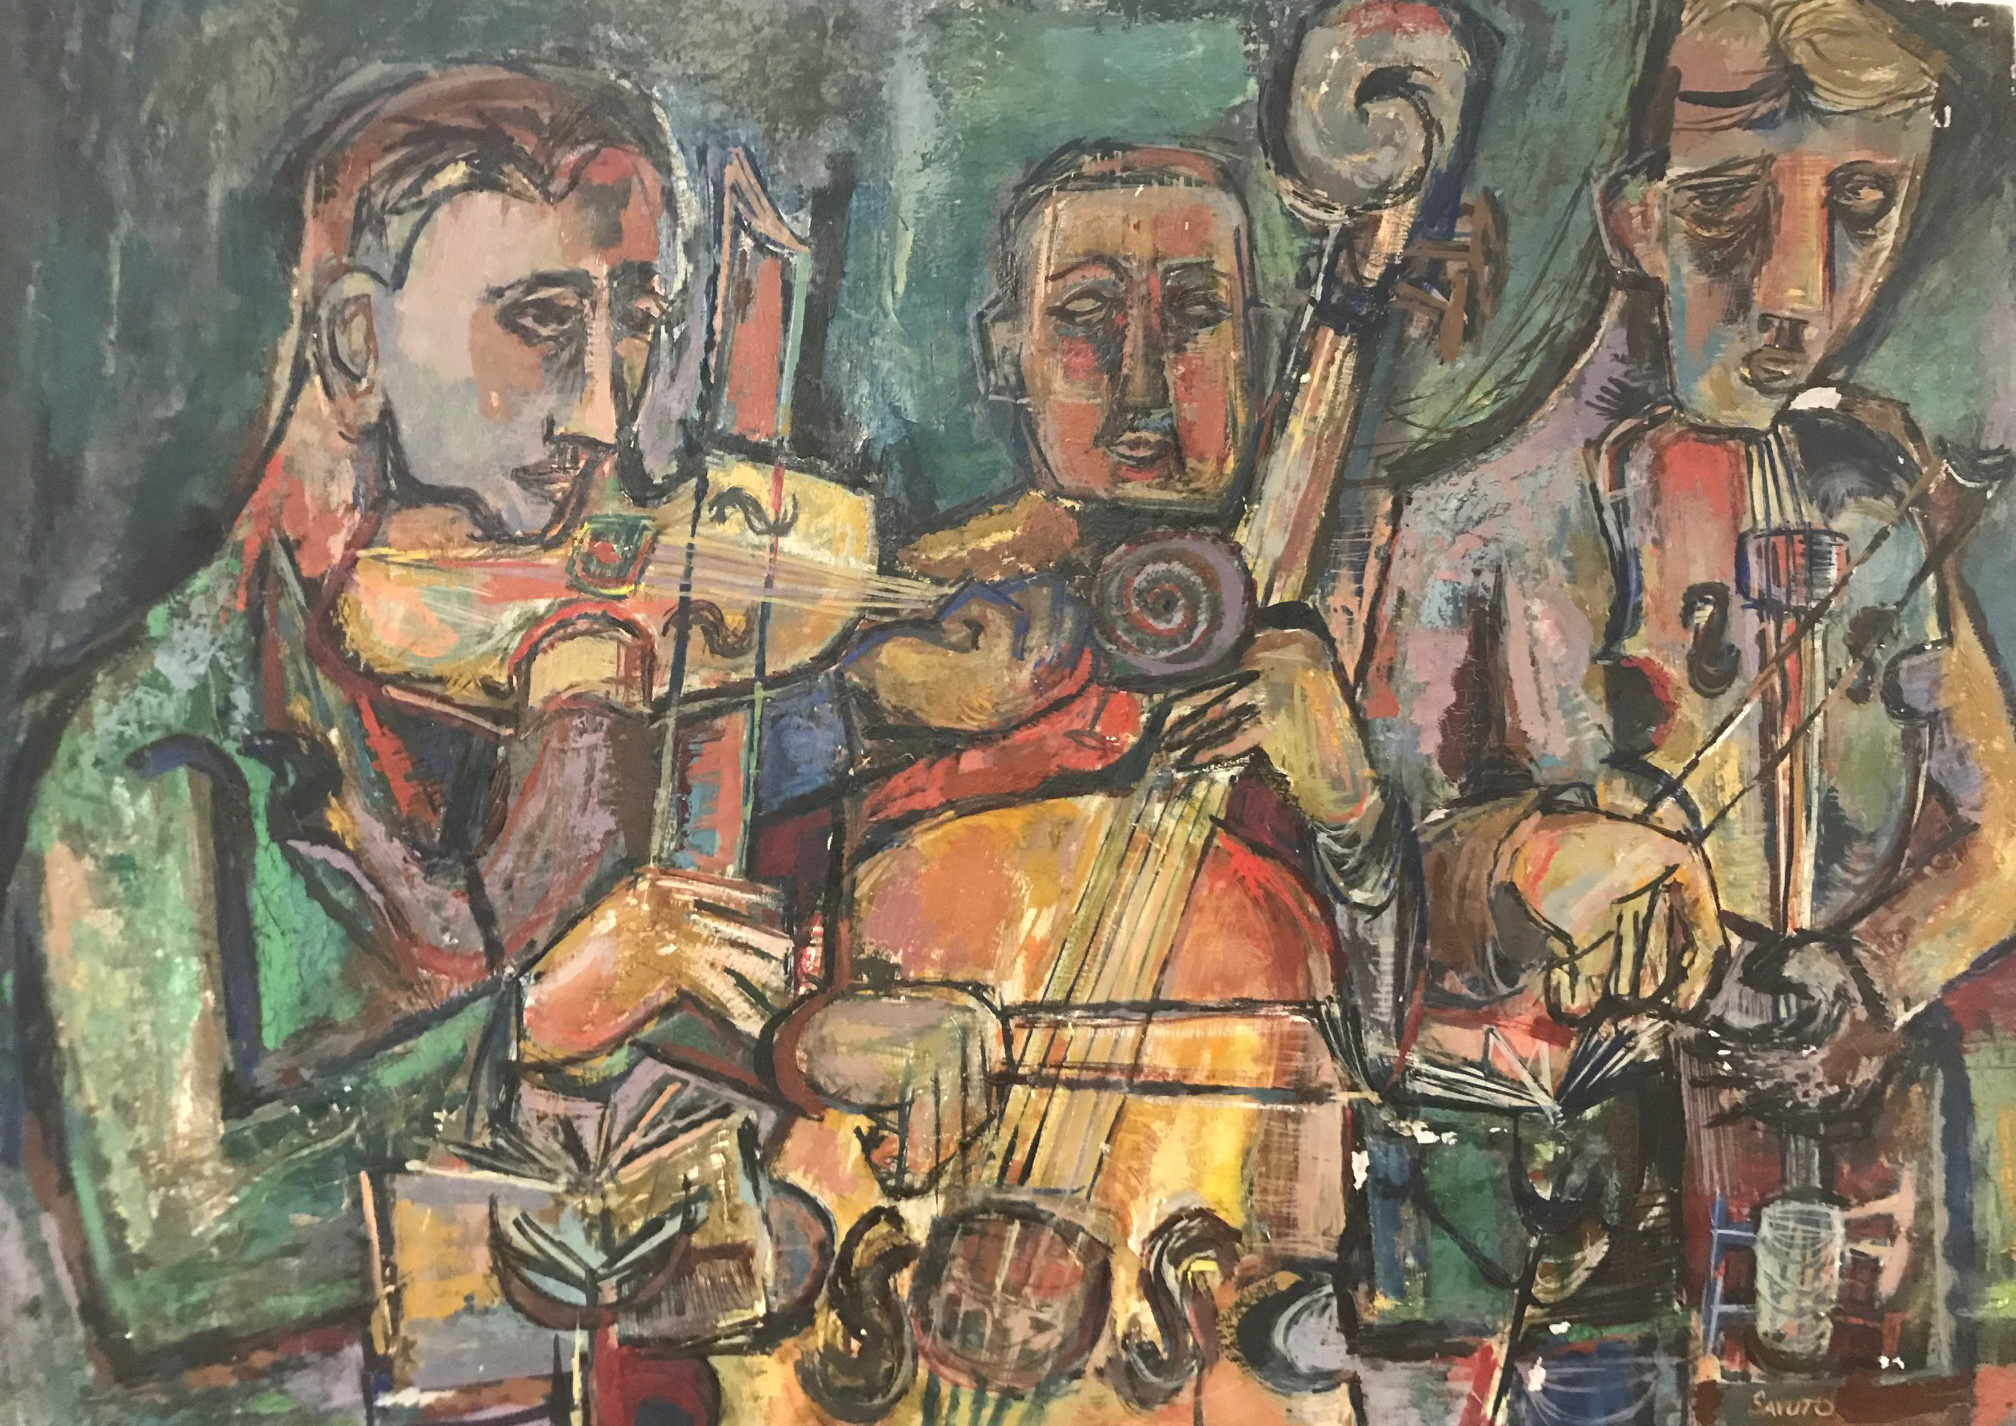 MID CENTURY ABSTRACT PAINTING OF MUSICIANS BY SAVUTO